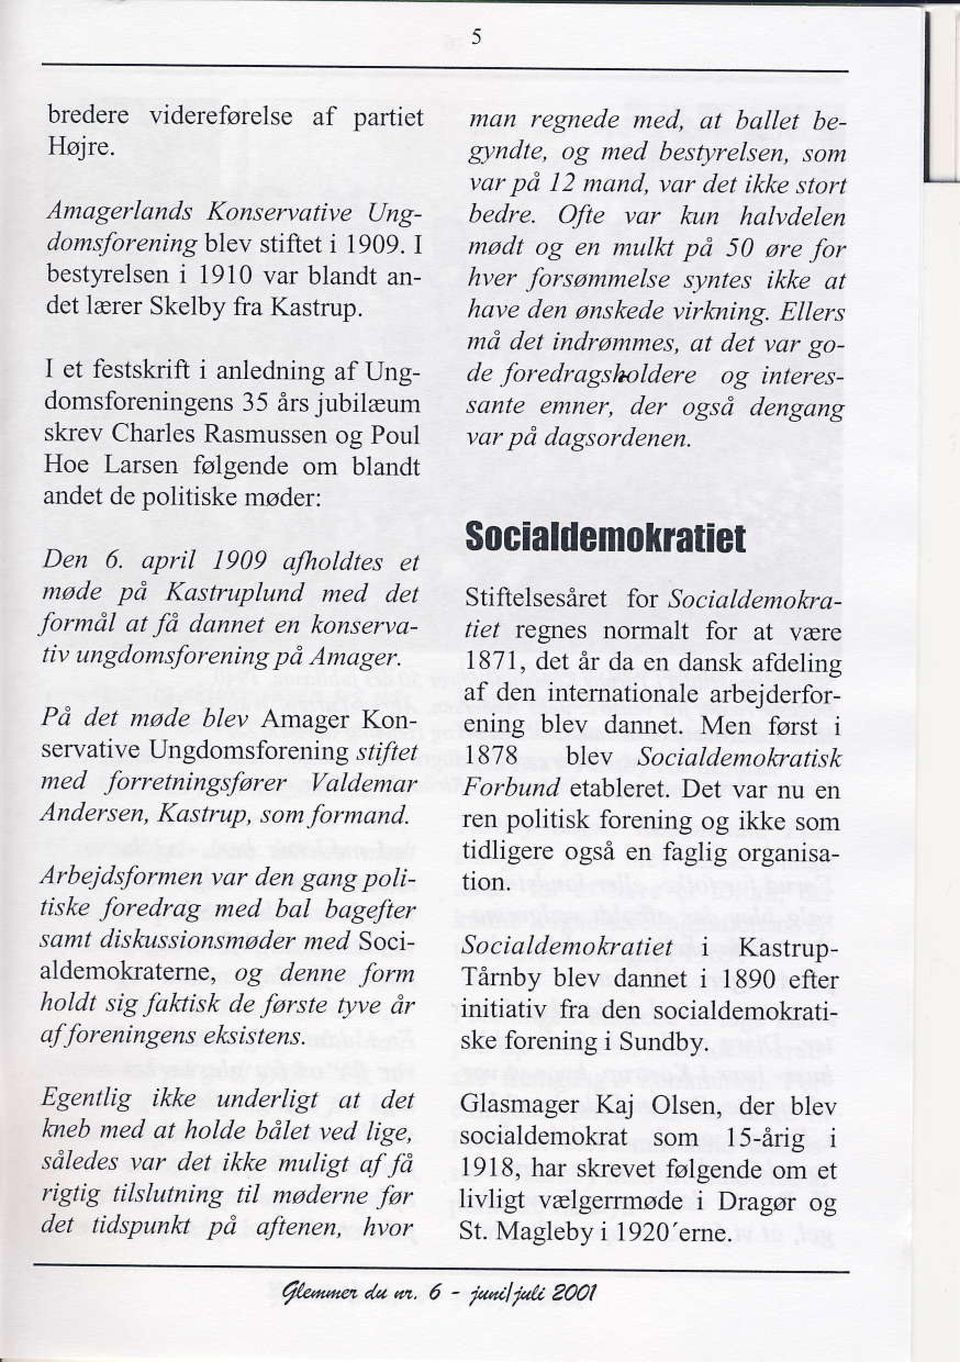 april 1909 alholdtes et made pti Kastruplund ned det forntil at f,i dannet en kc,nservativ ung.lomsforening pd lmager.